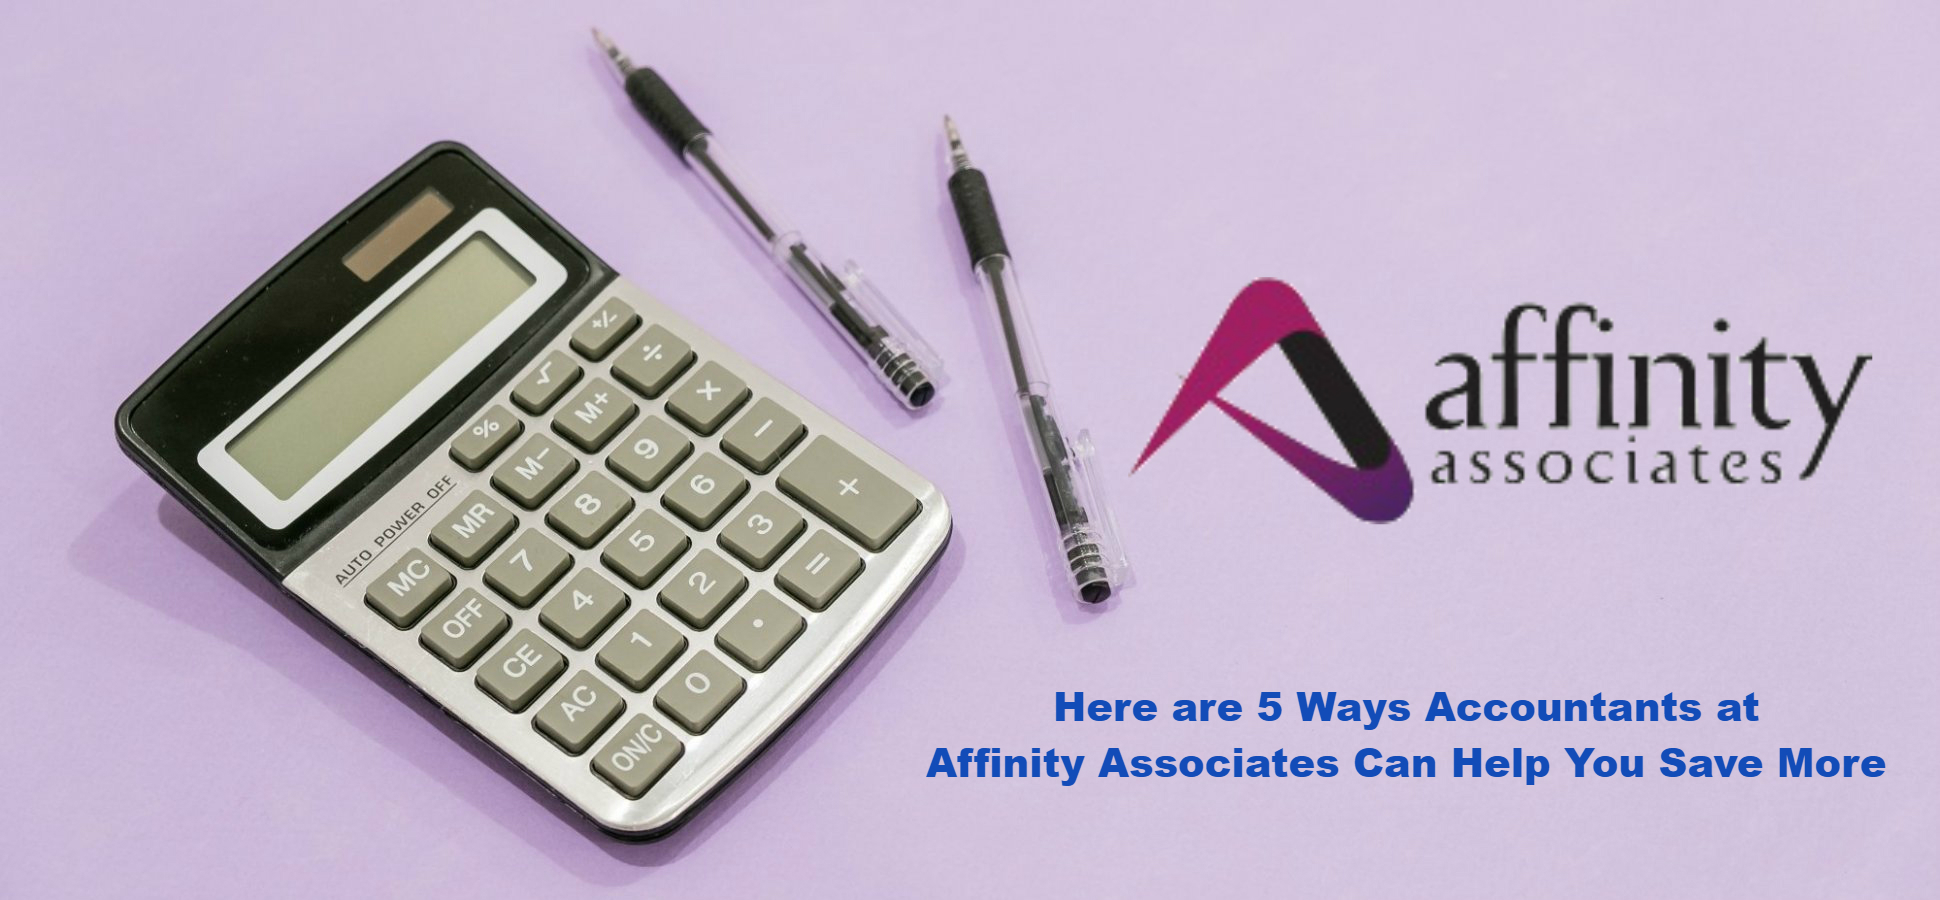 Here are 5 Ways Accountants at Affinity Associates Can Help You Save More